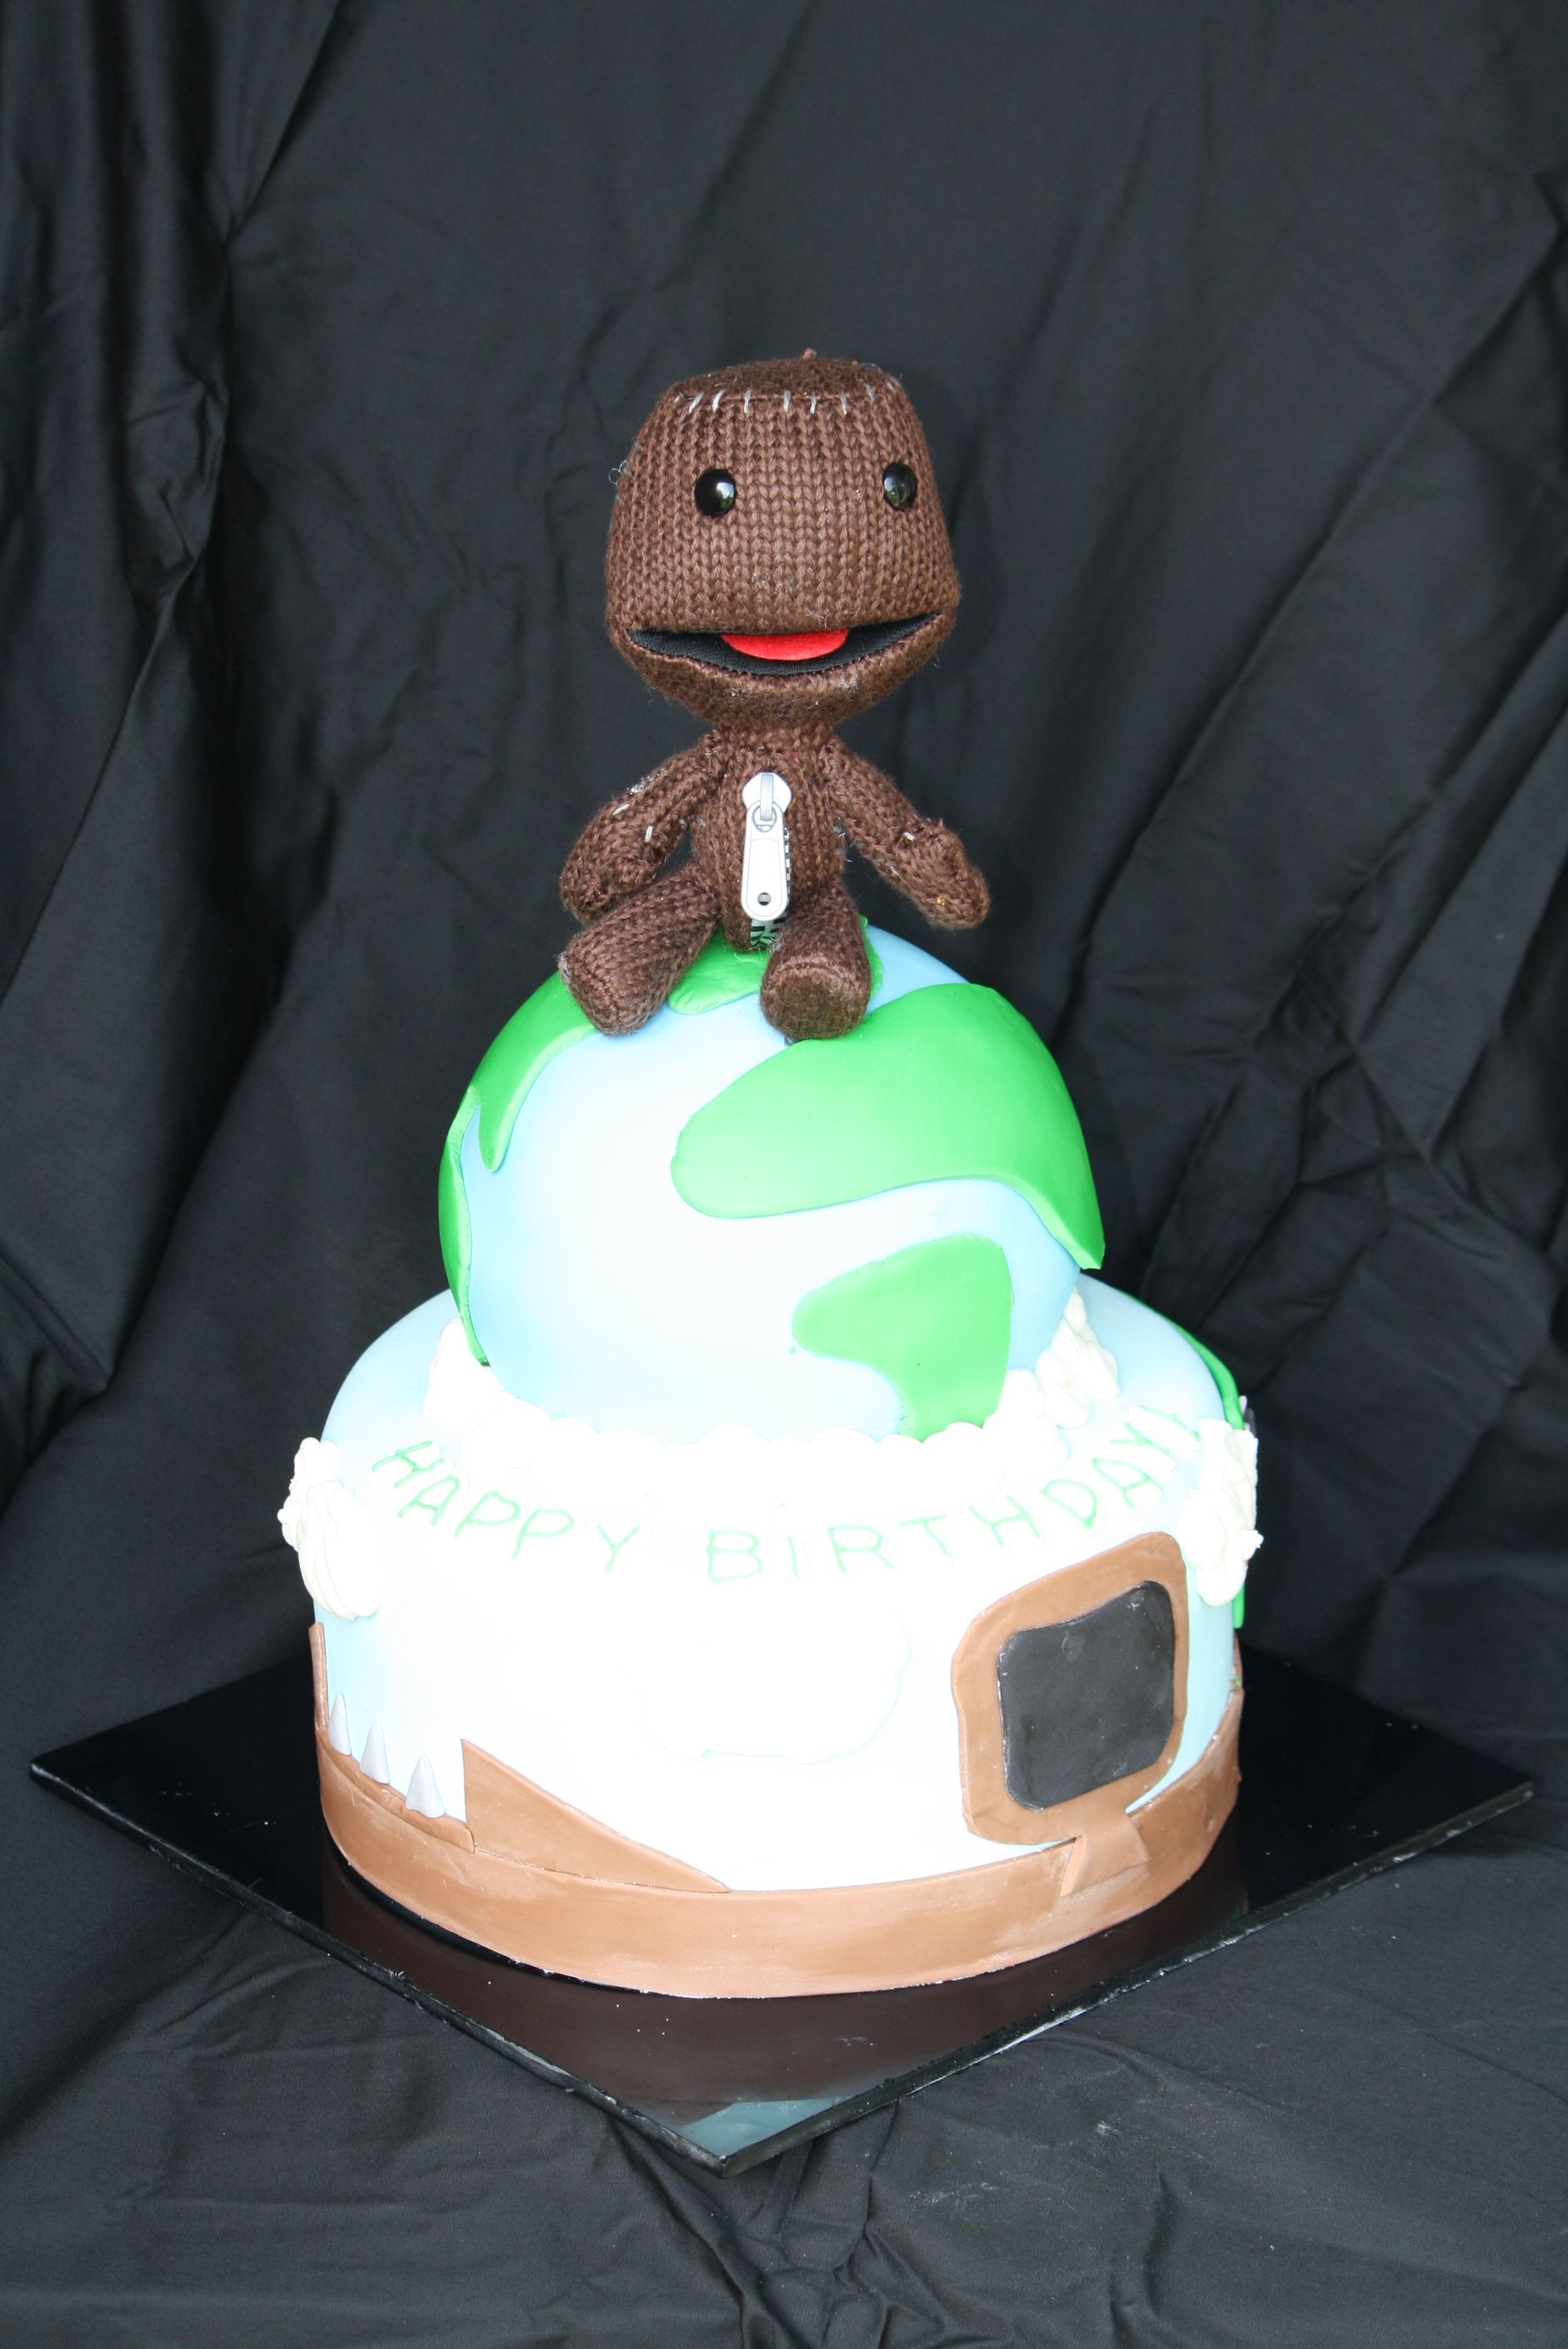 Surprising Little Big Planet Birthday Cake With Sackboy Topper Happy 14Th Birthday Cards Printable Riciscafe Filternl